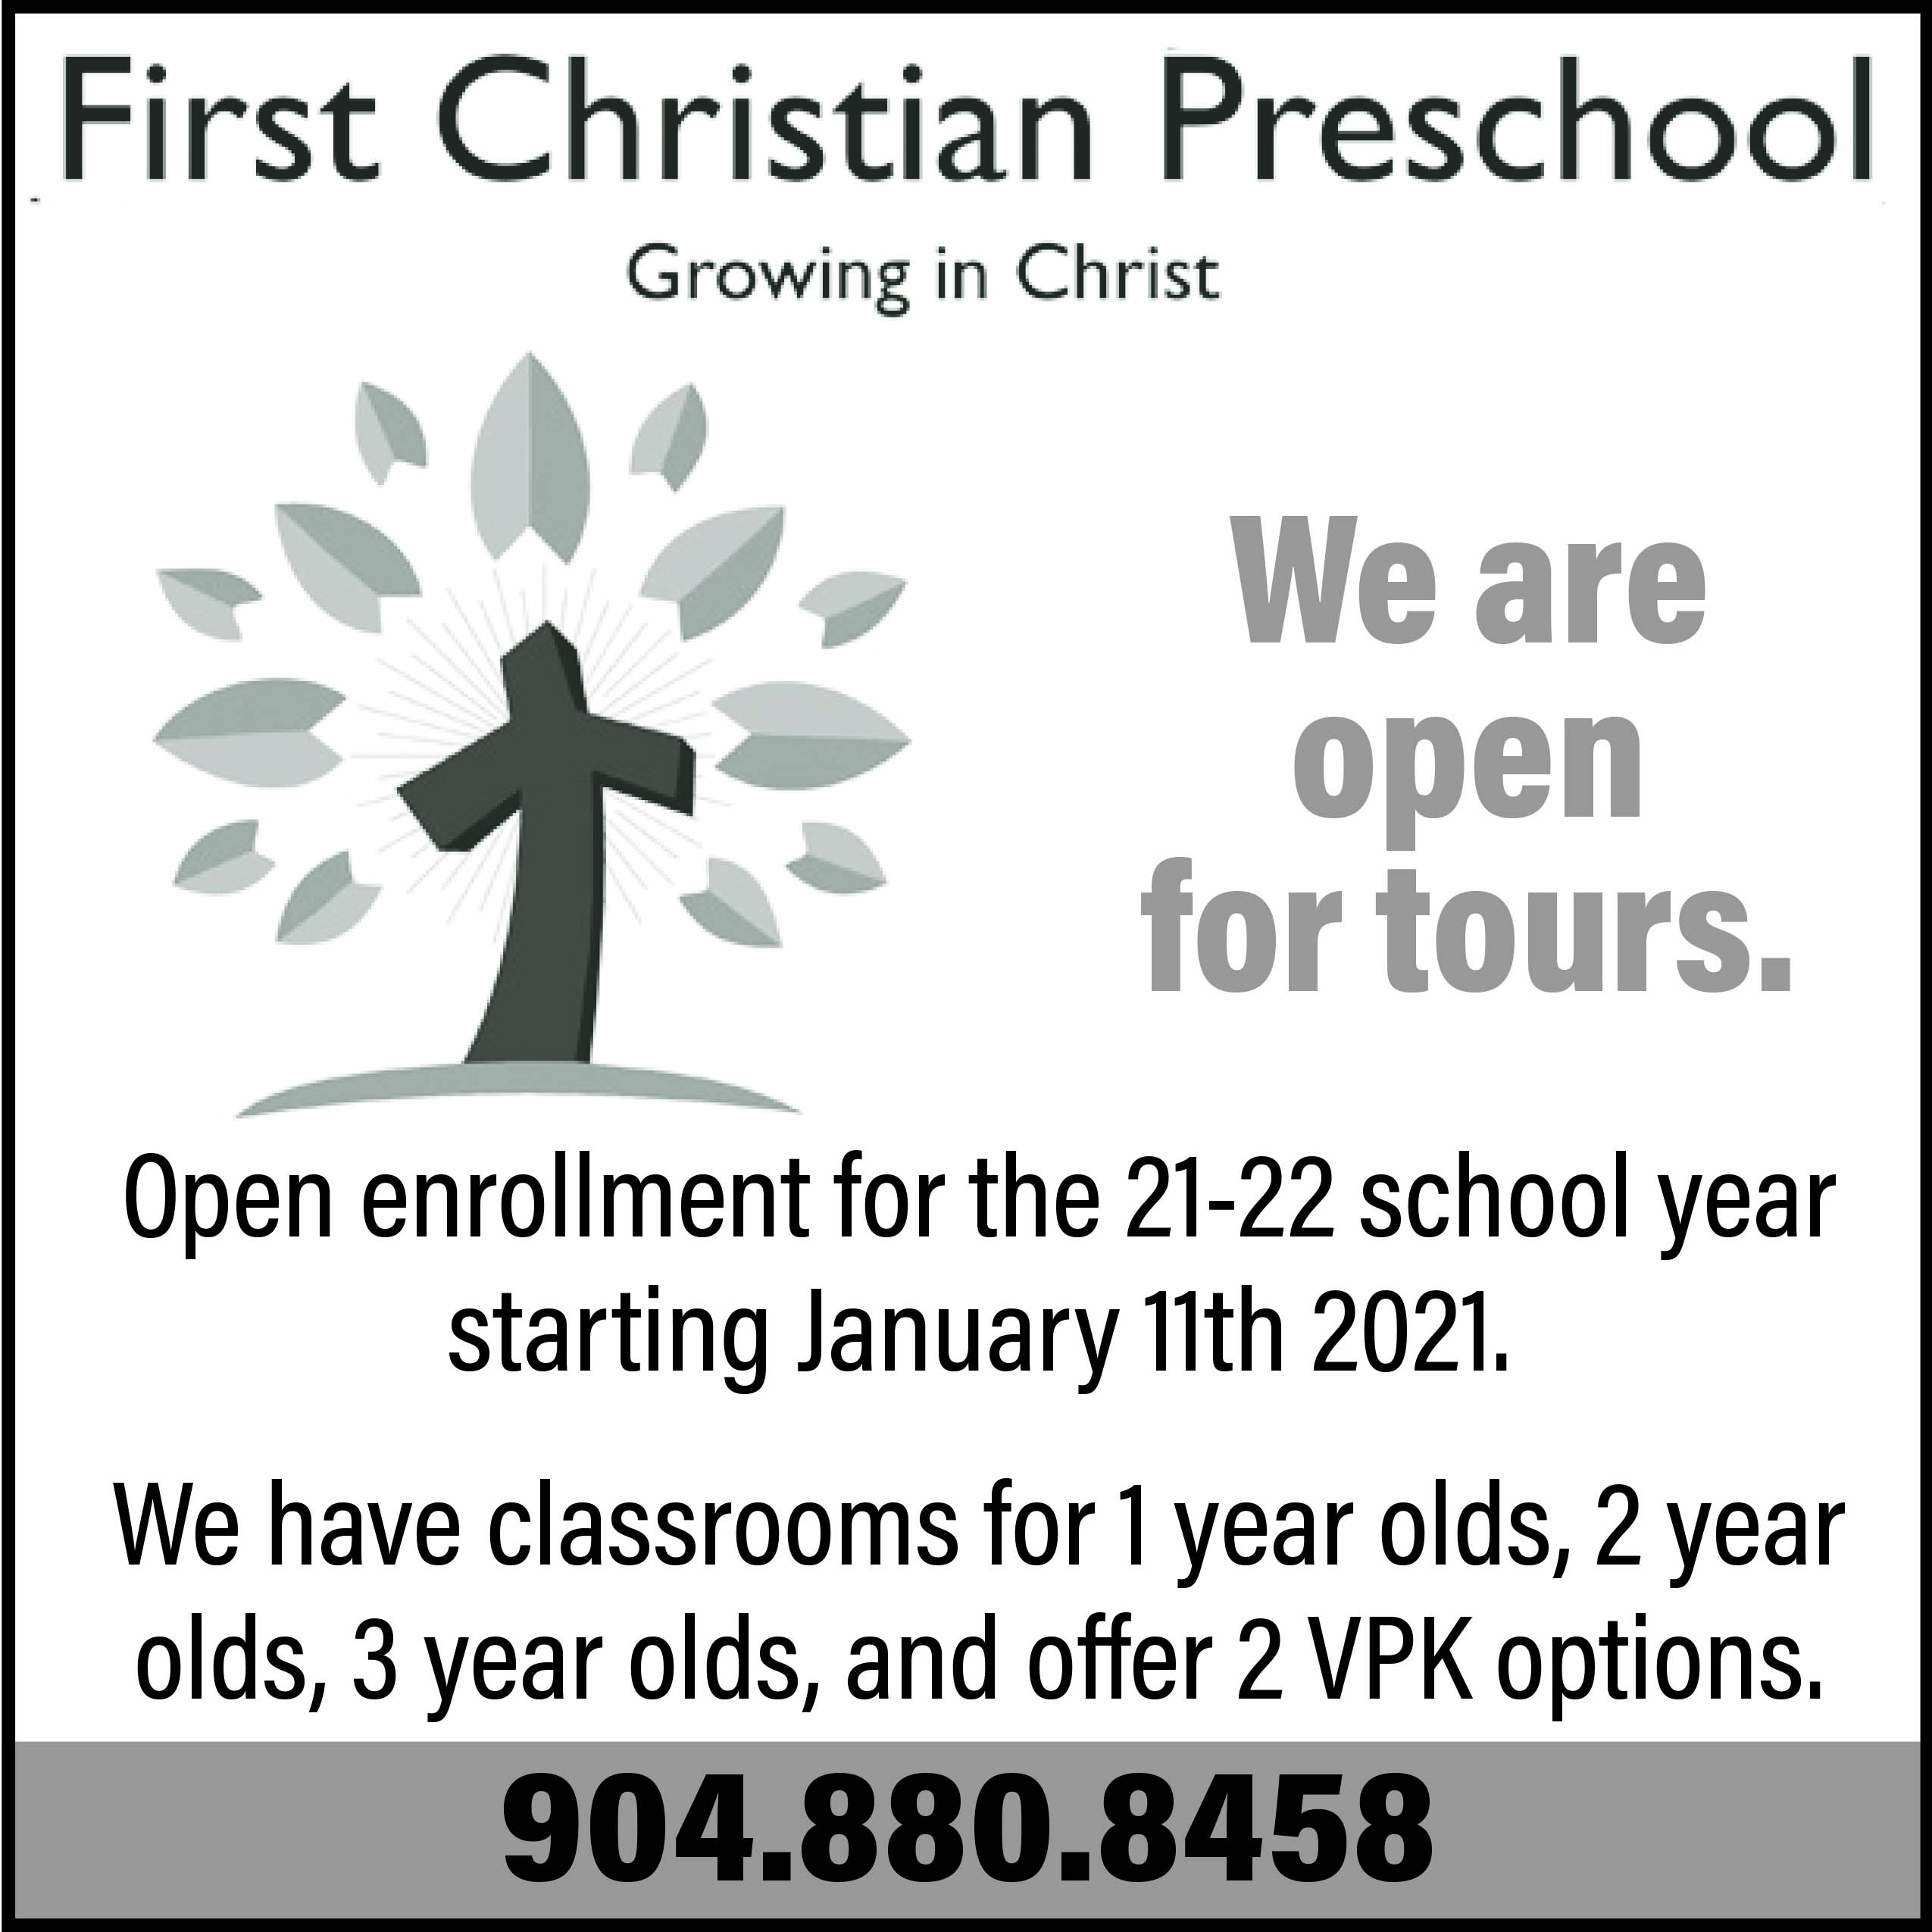 First Christian Preschool We are open for tours!